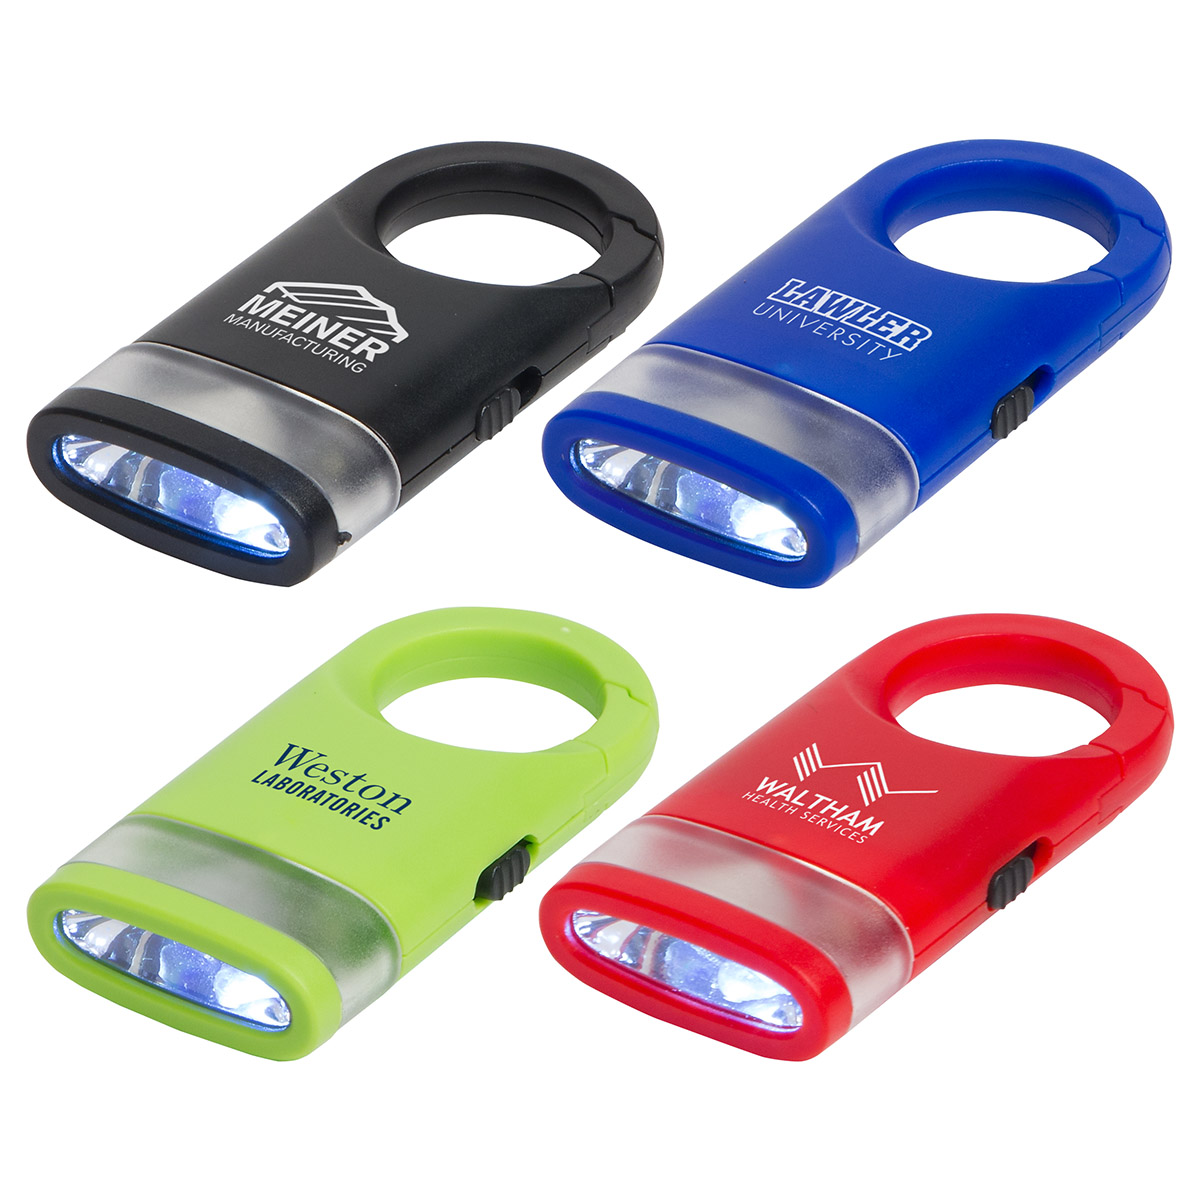 Dual Shine LED Light Carabiner, WLT-DS16 - 1 Colour Imprint